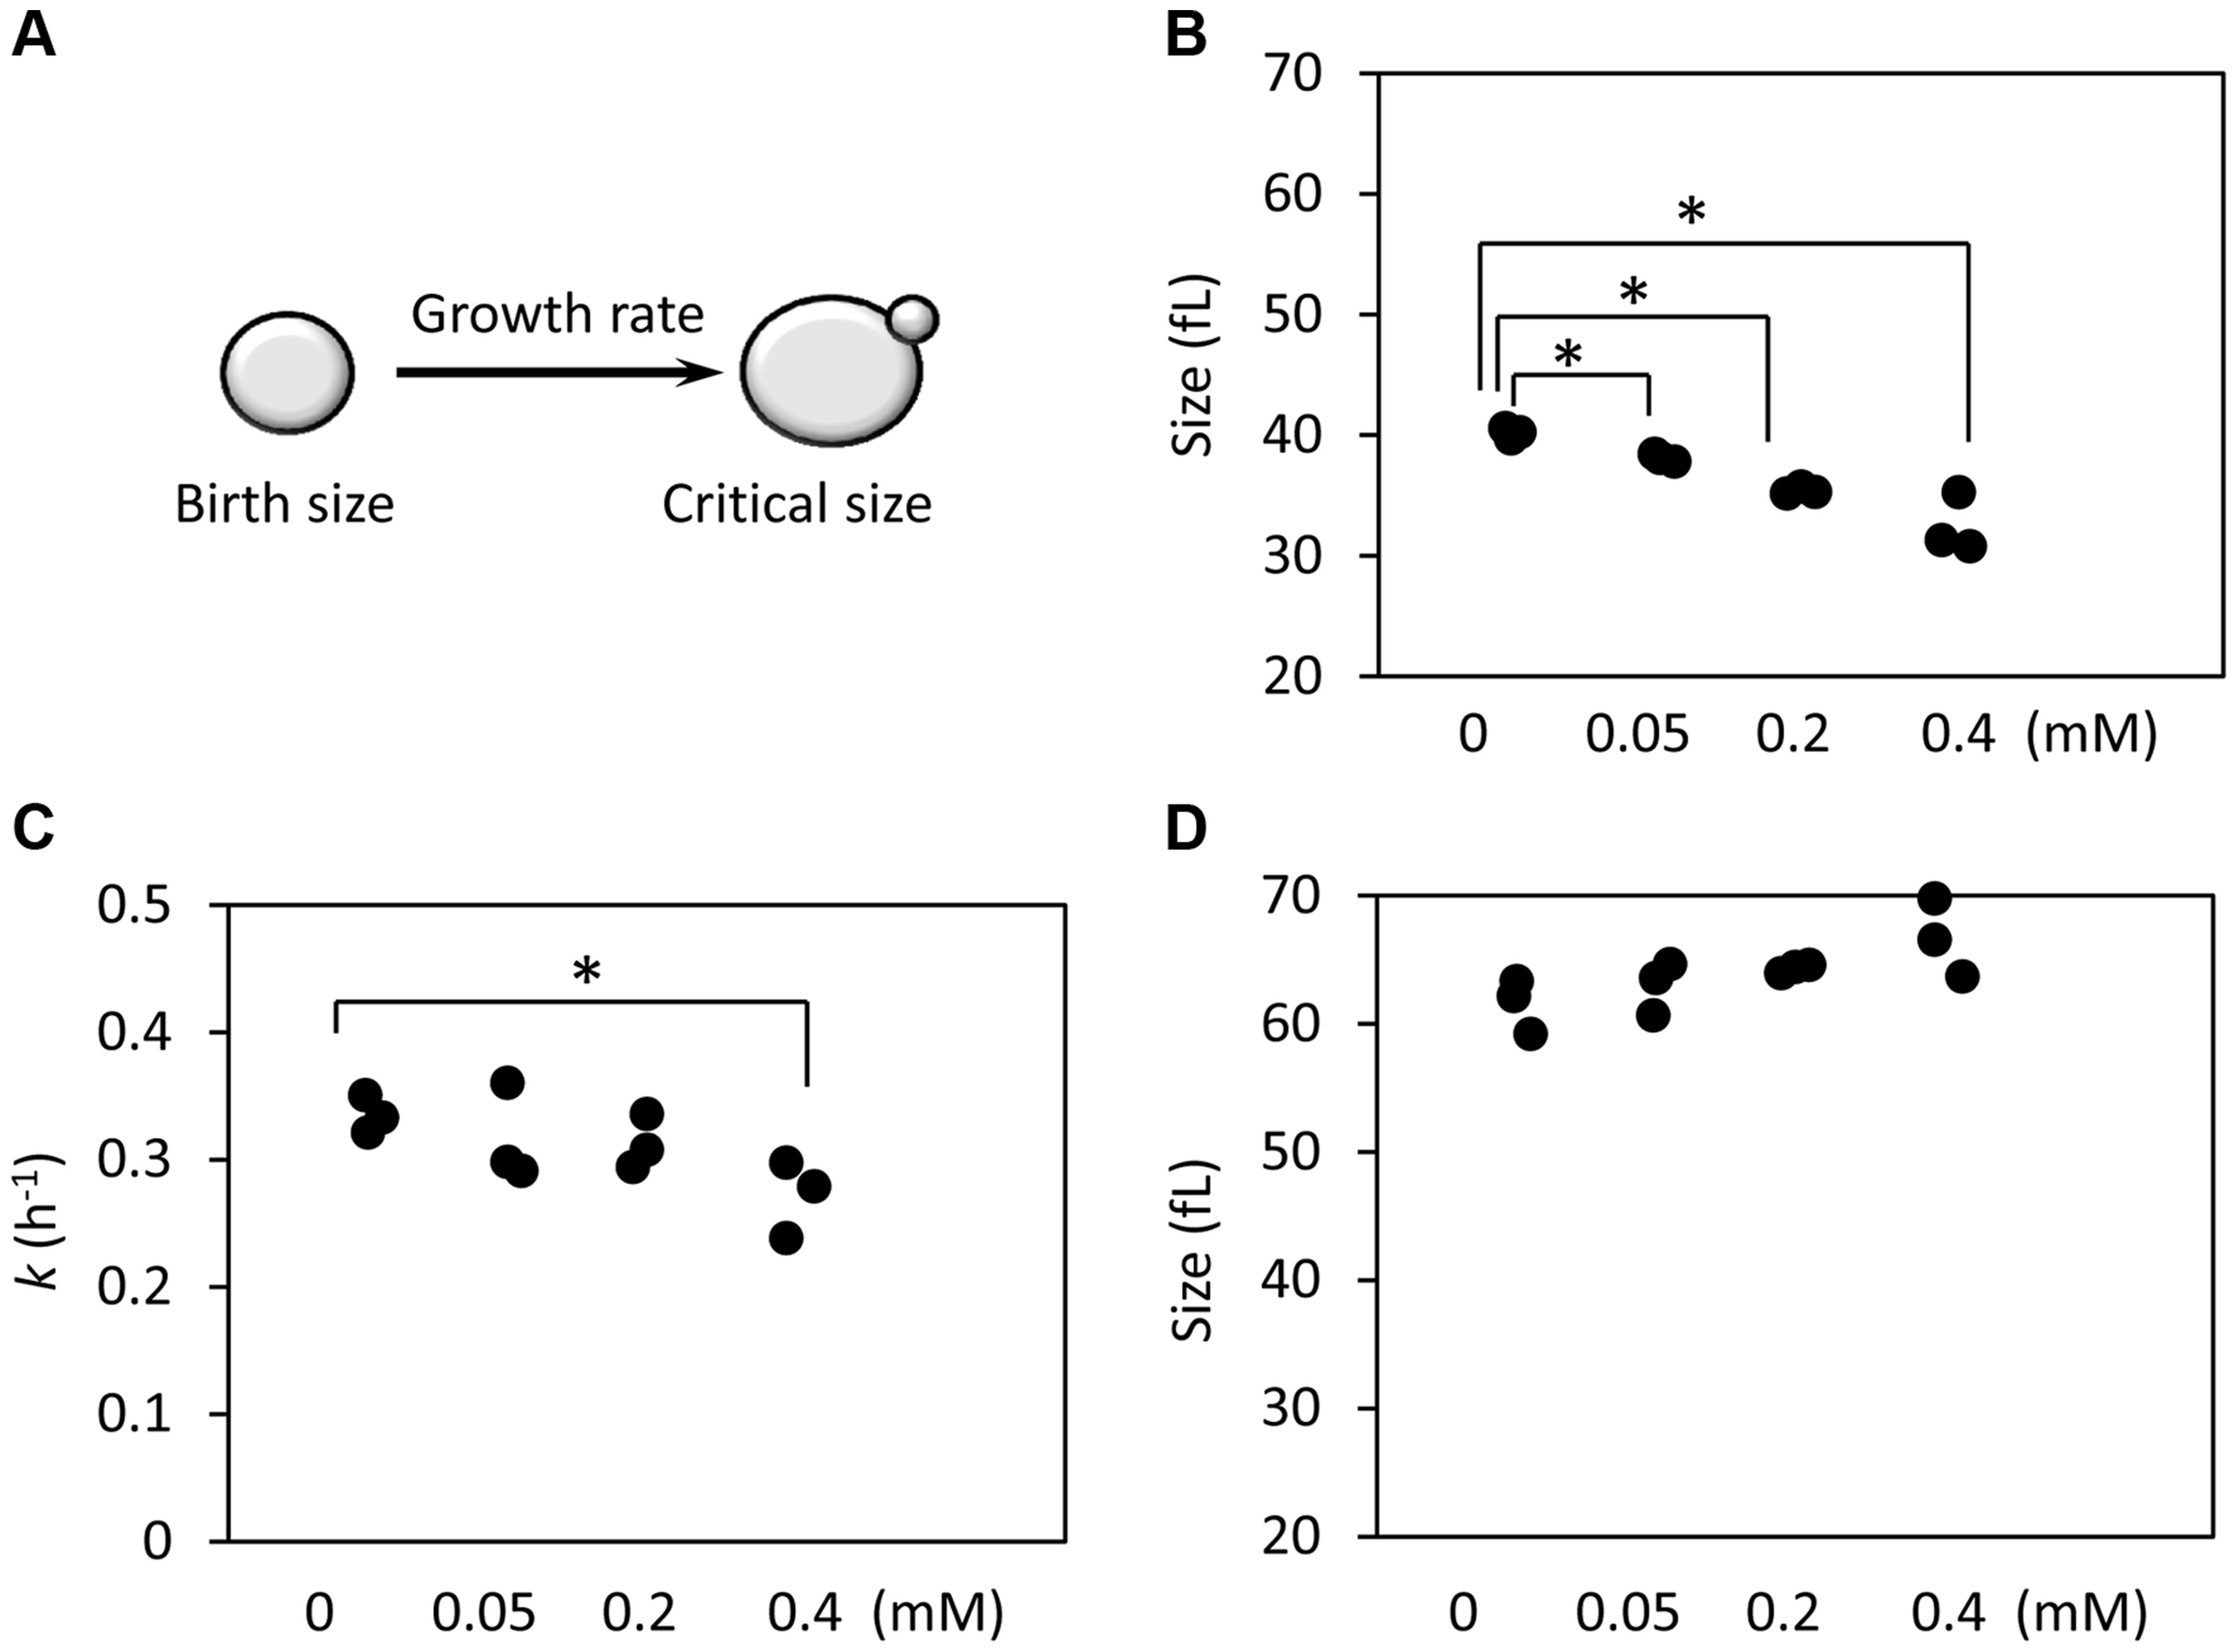 Ibuprofen at low doses moderately delays G1, primarily through a reduction in birth size.